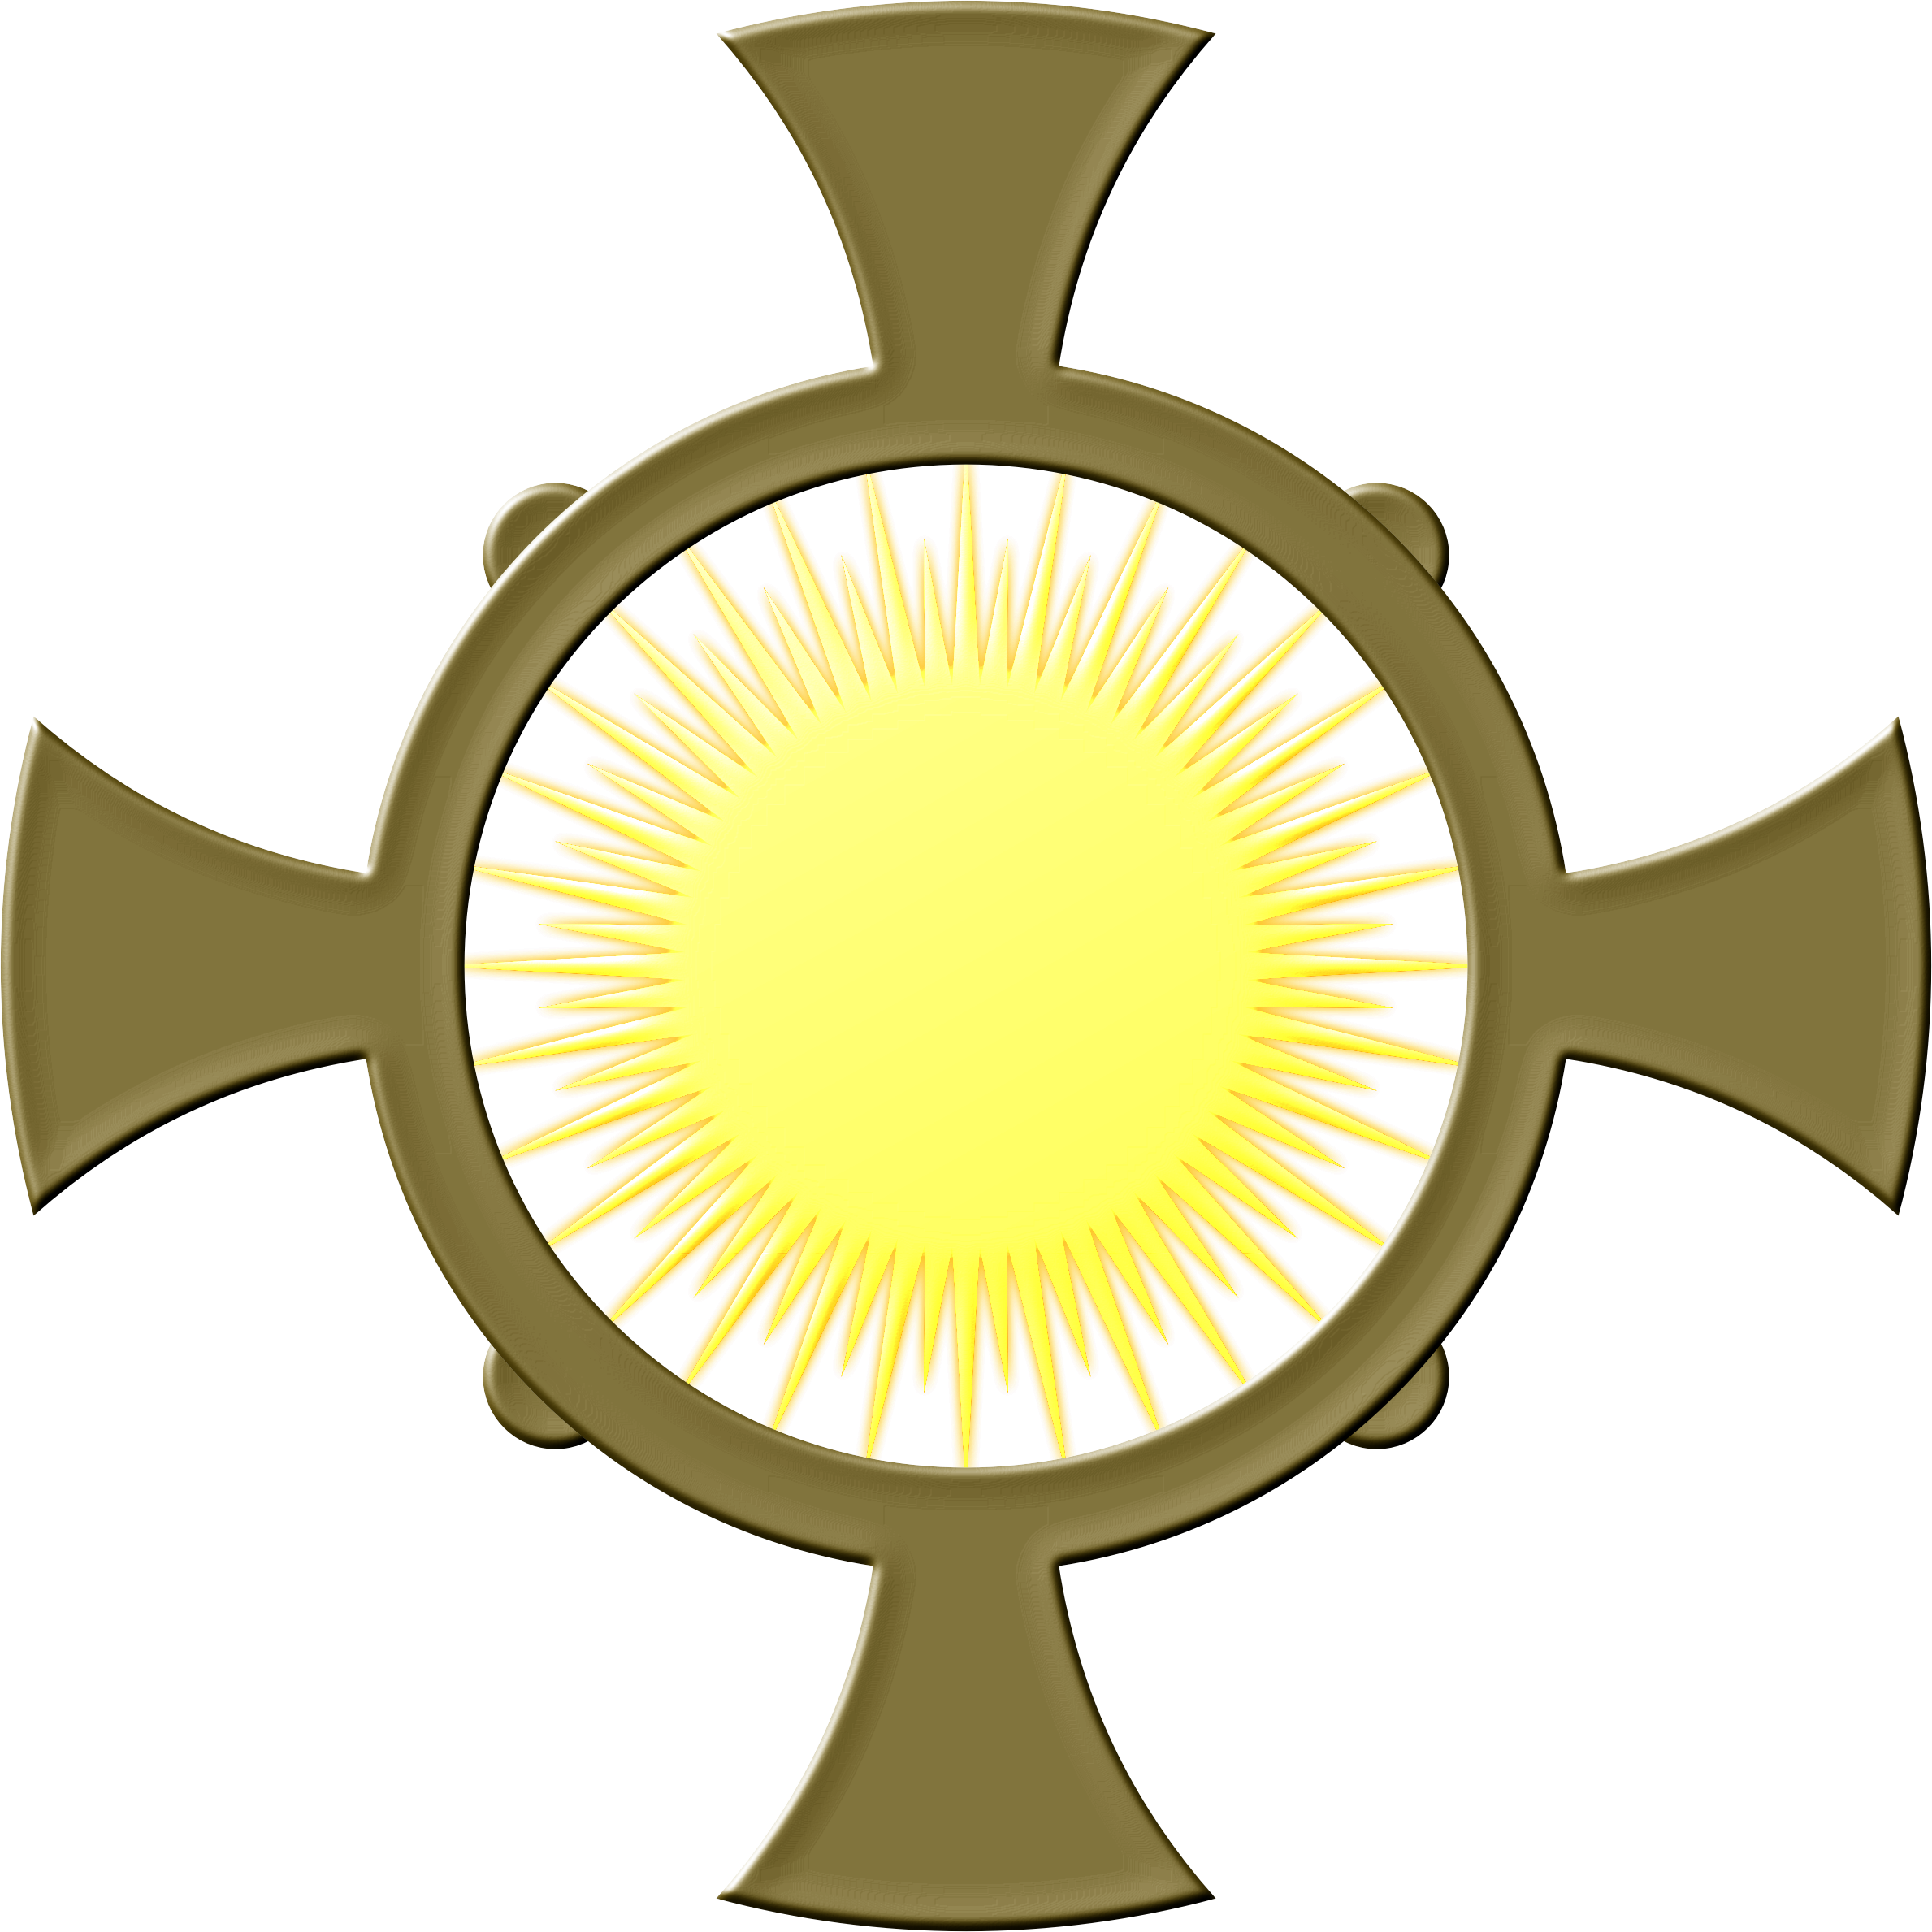 Monstrance drawing icon. Cross xxii icons png